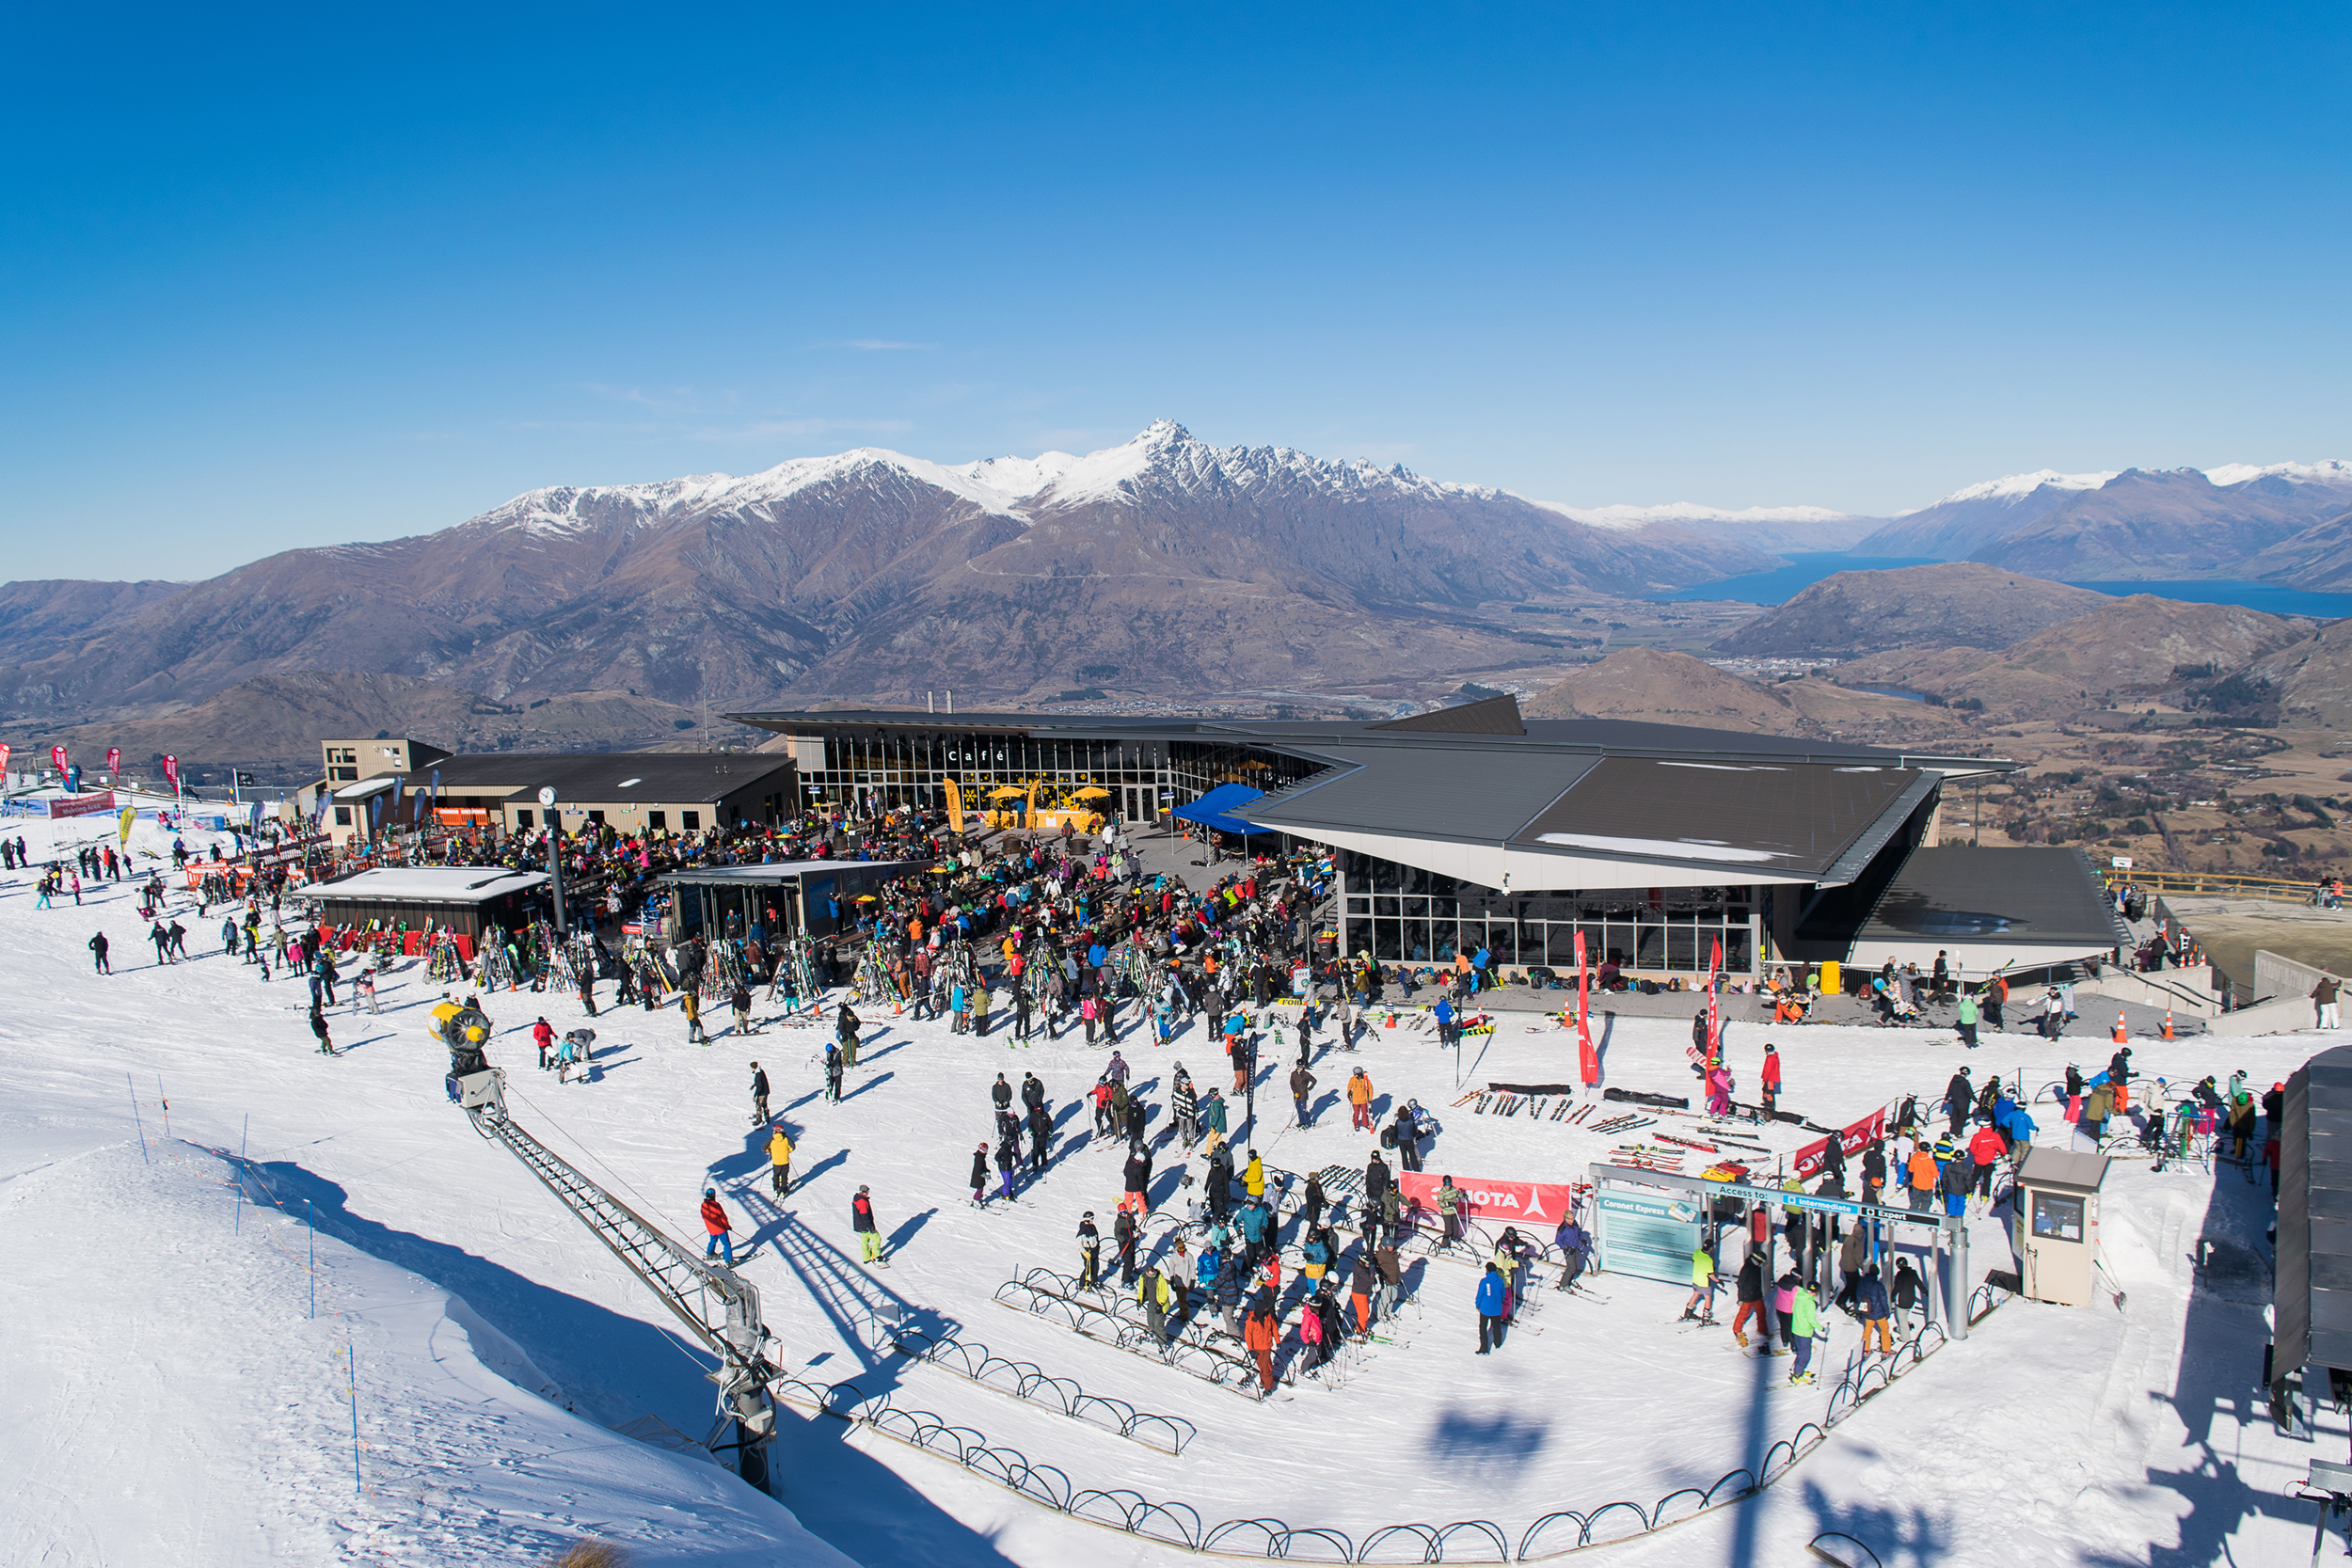 Base area of Coronet Peak, outside Queenstown, New Zealand